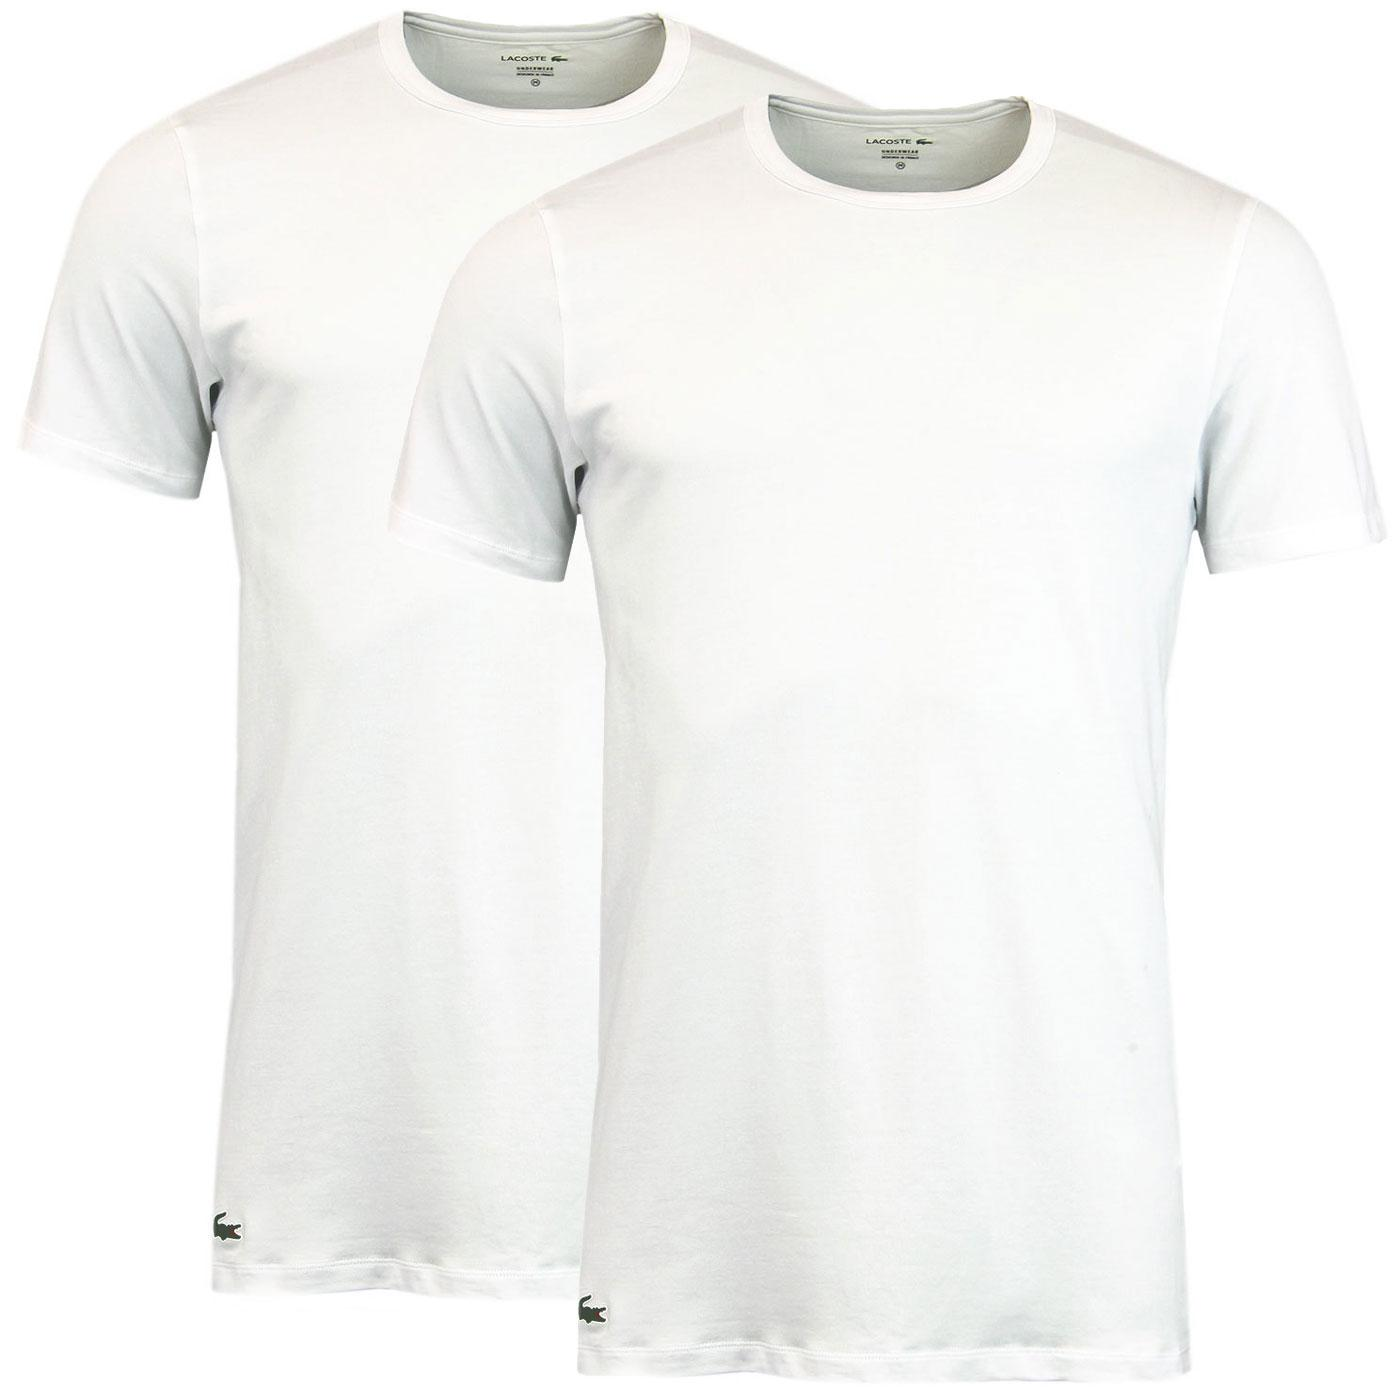 LACOSTE Men's 2 Pack Crew Neck T-Shirt - White